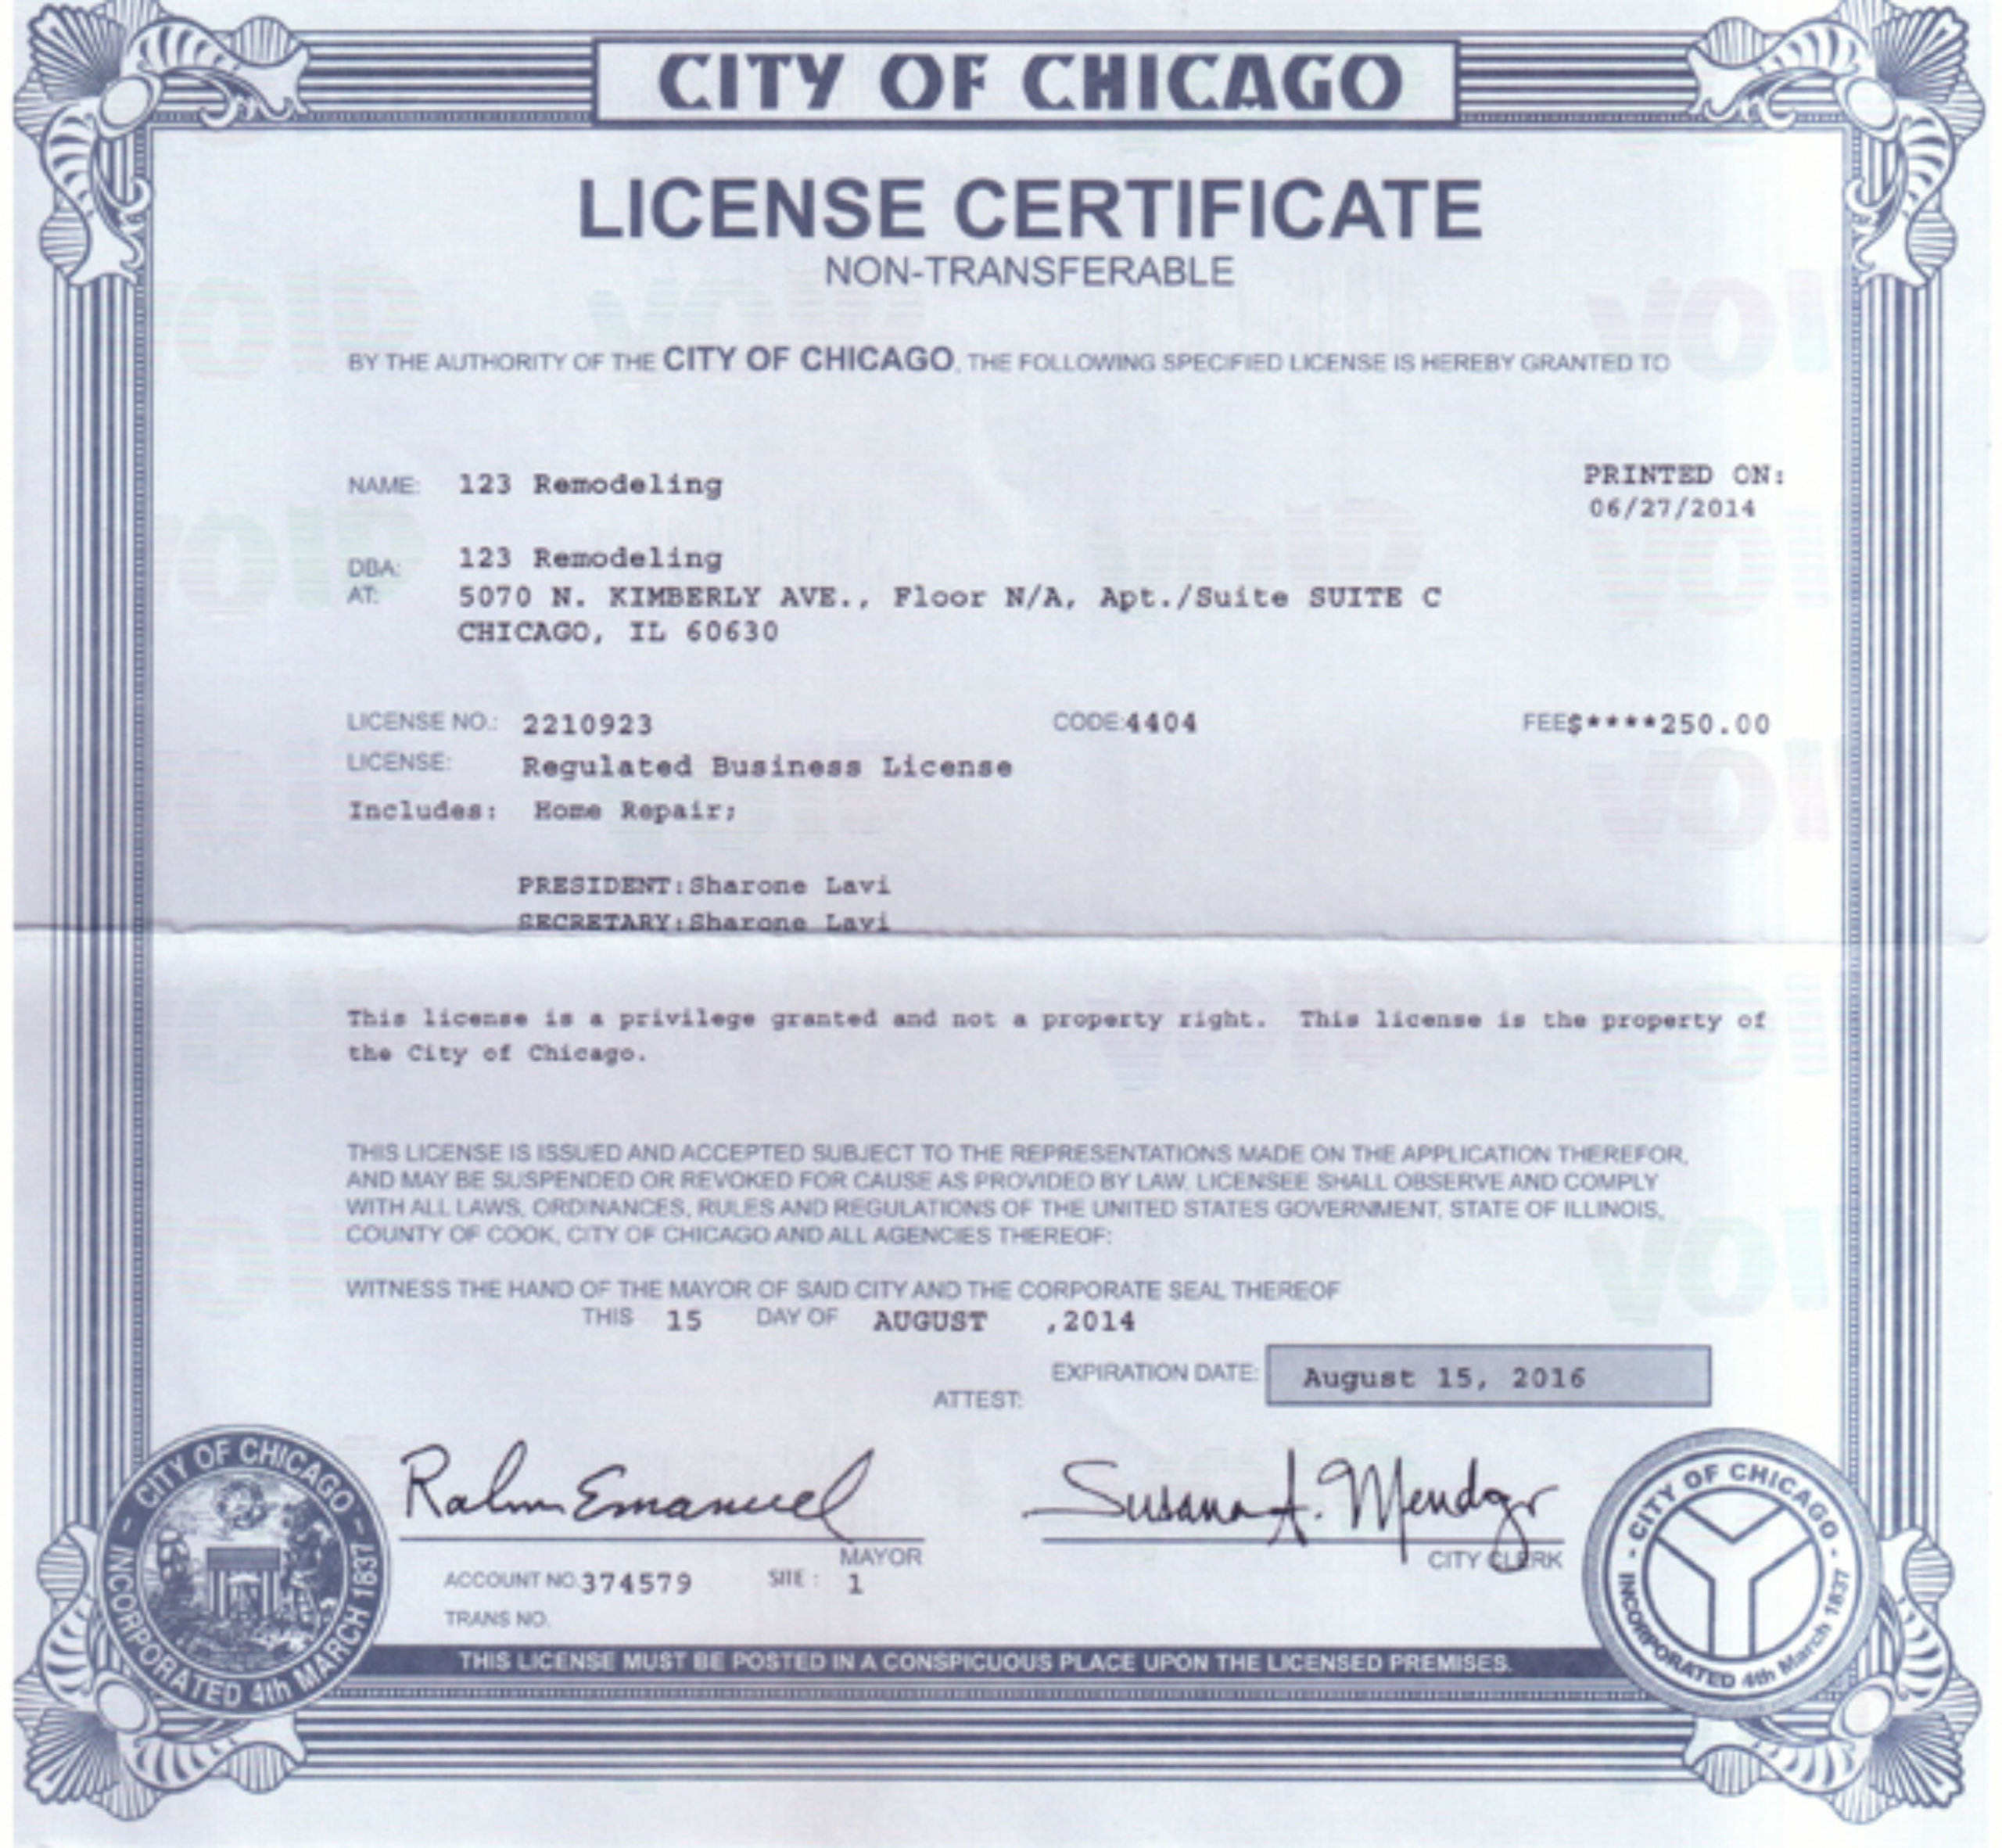 123 Remodeling City of Chicago Limited Business License